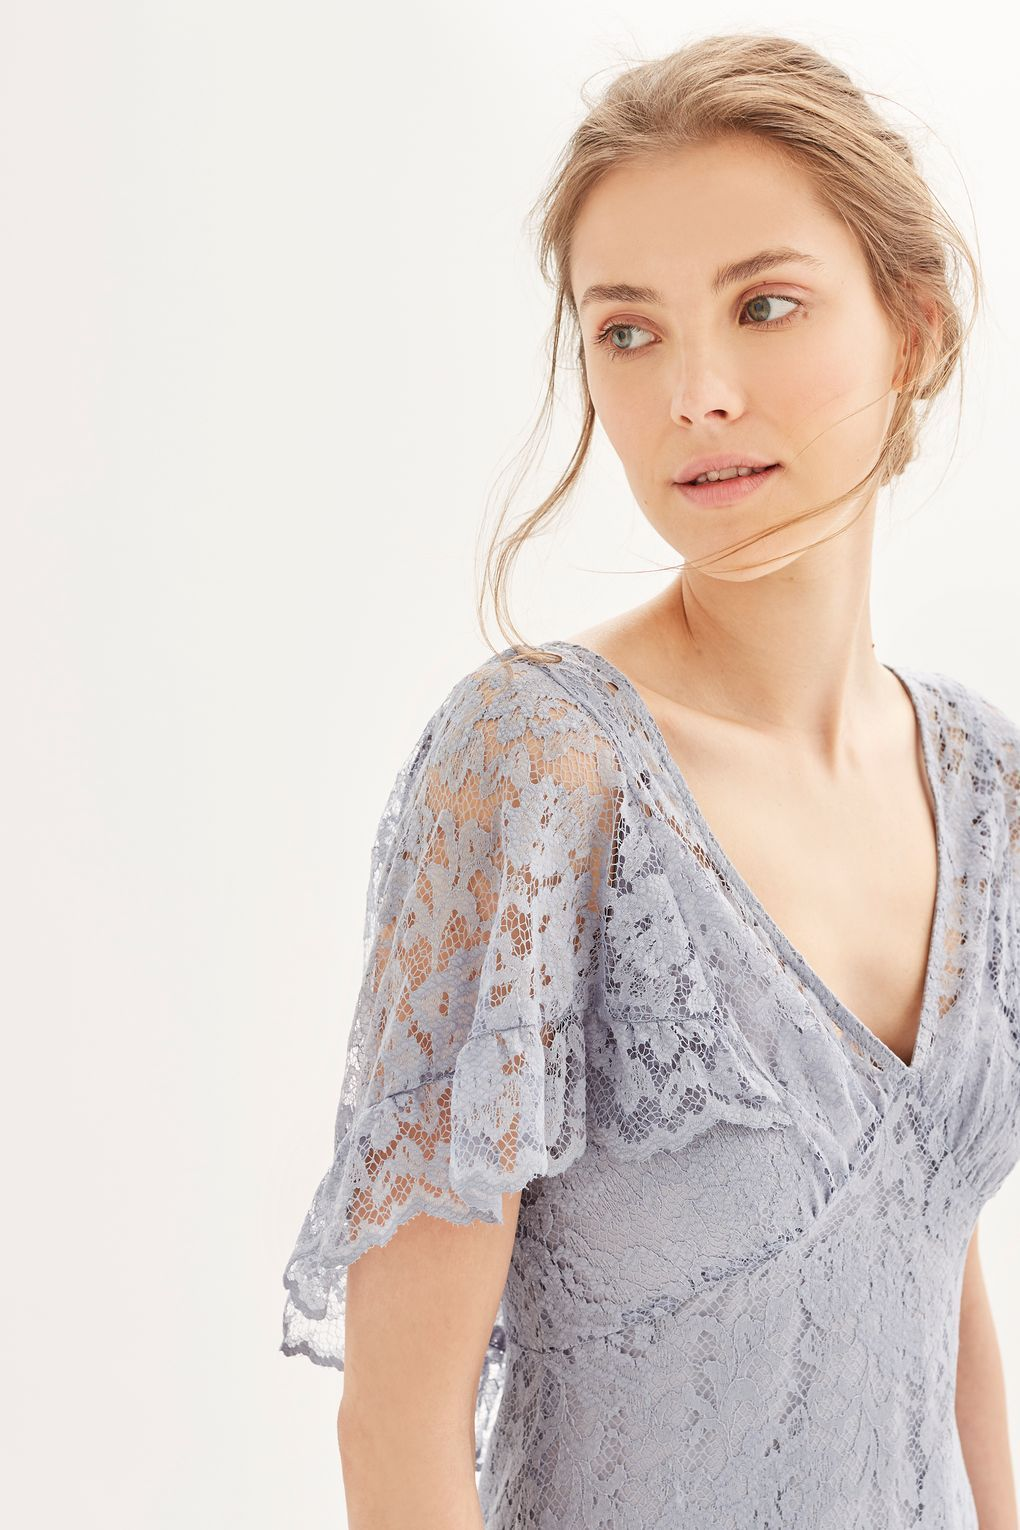 Look To Luxe Lace When Choosing Your Formal Outfits This Dusty Blue